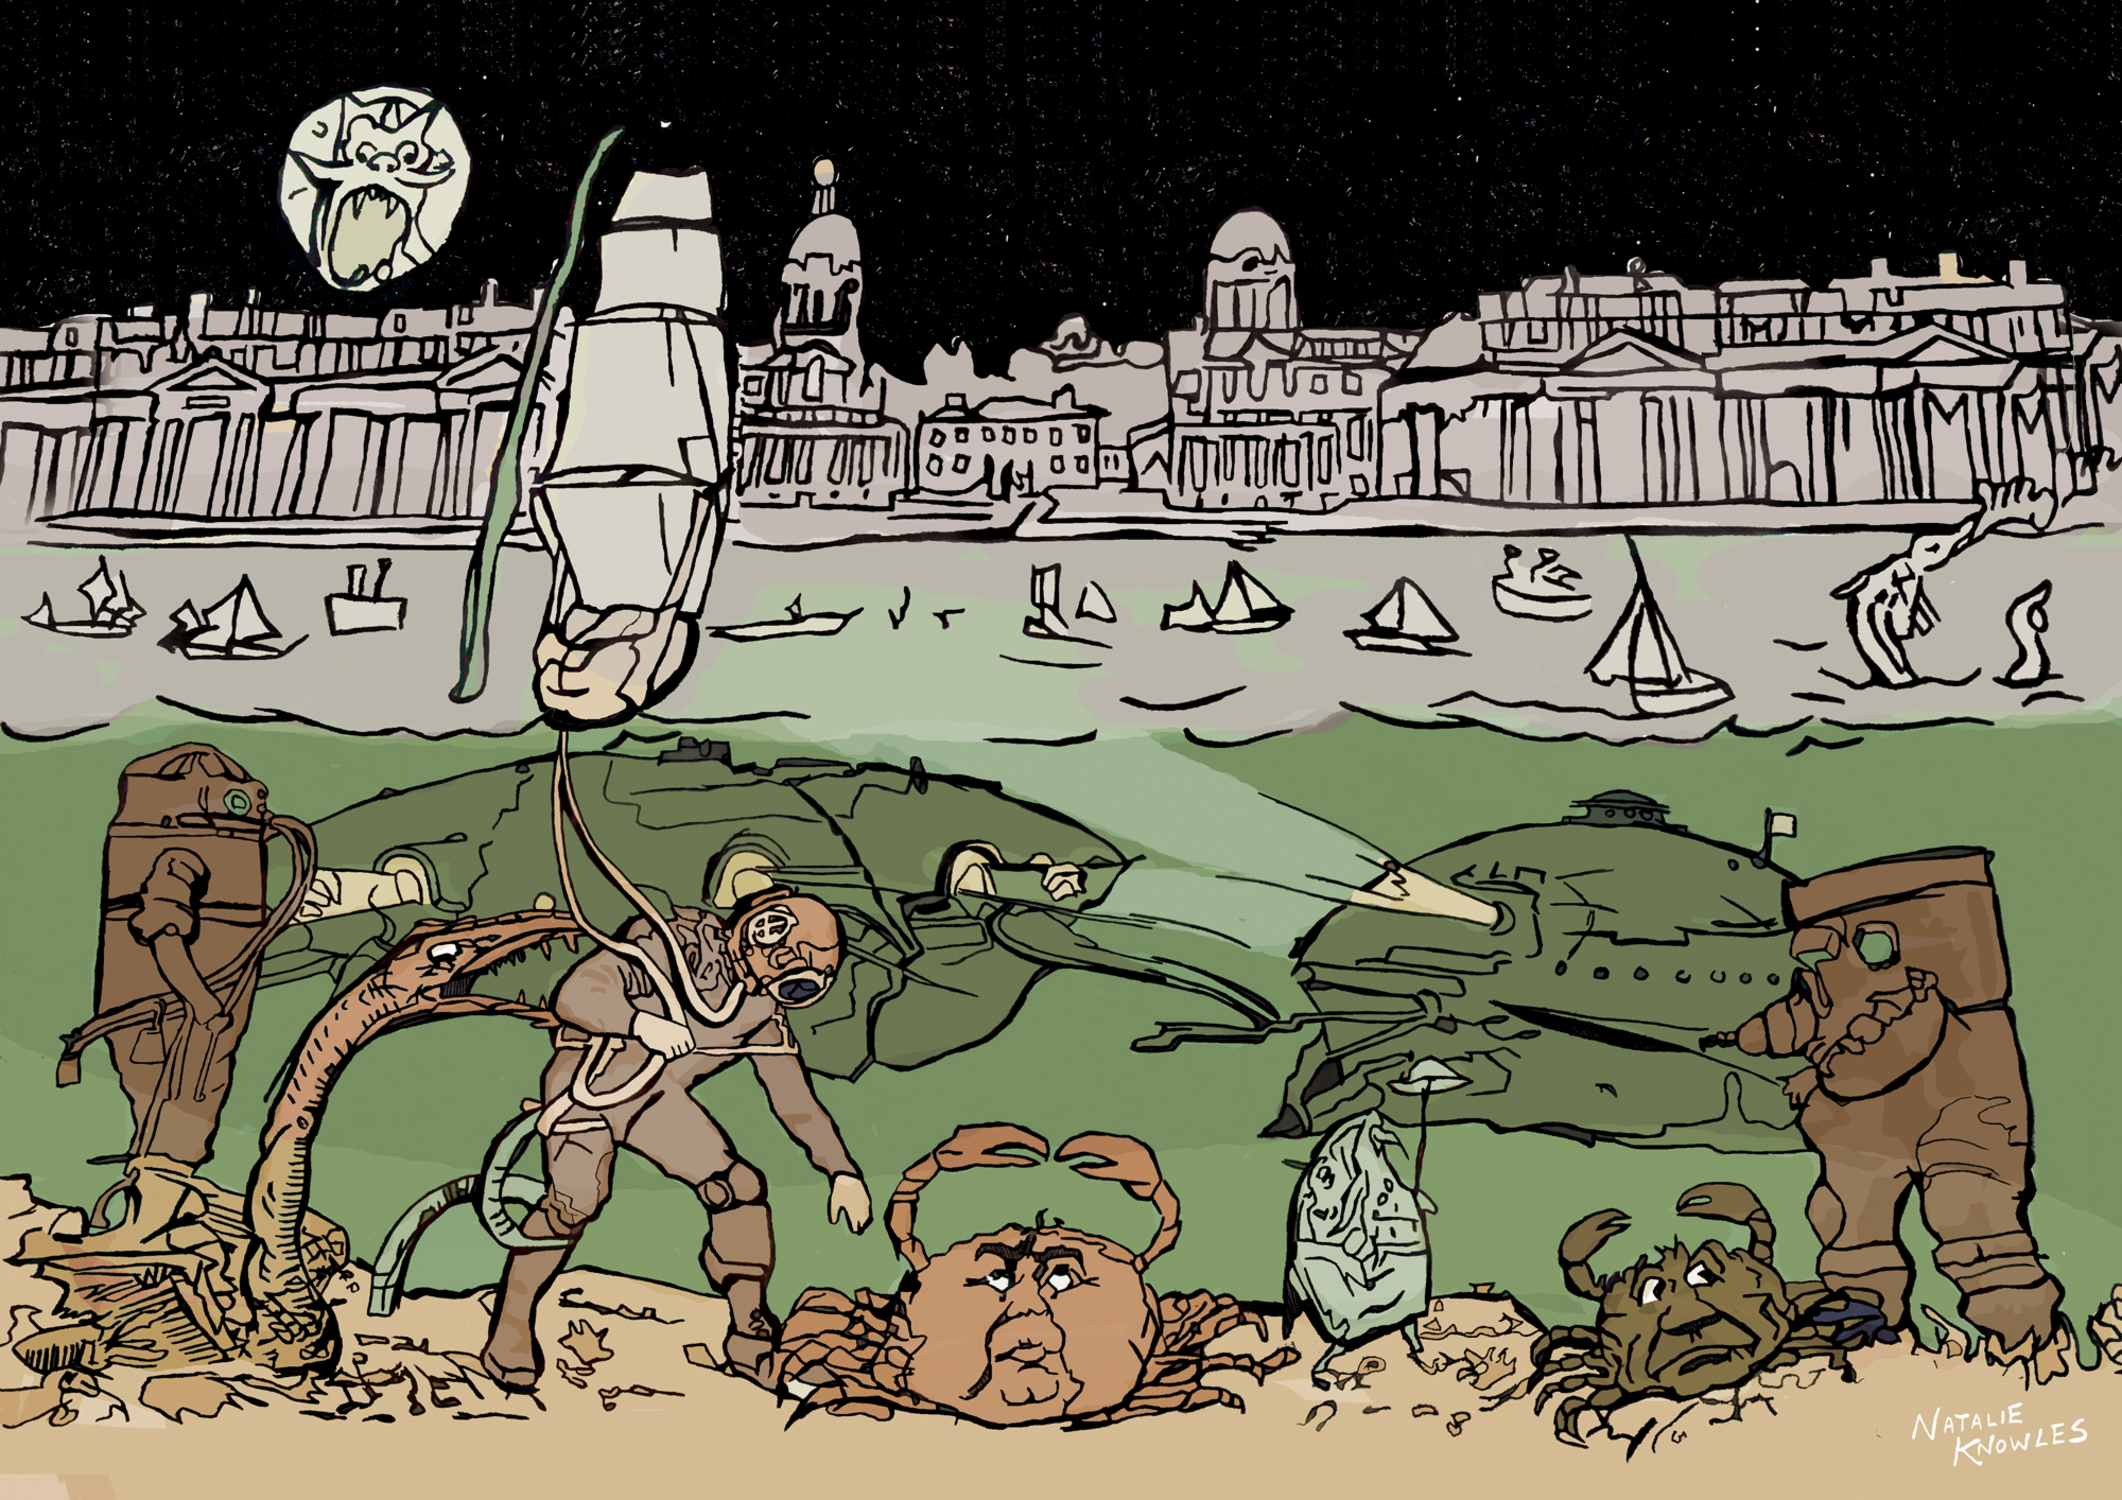 Subsalians Go Down To Sea At Greenwich Artwork by Natalie Knowles